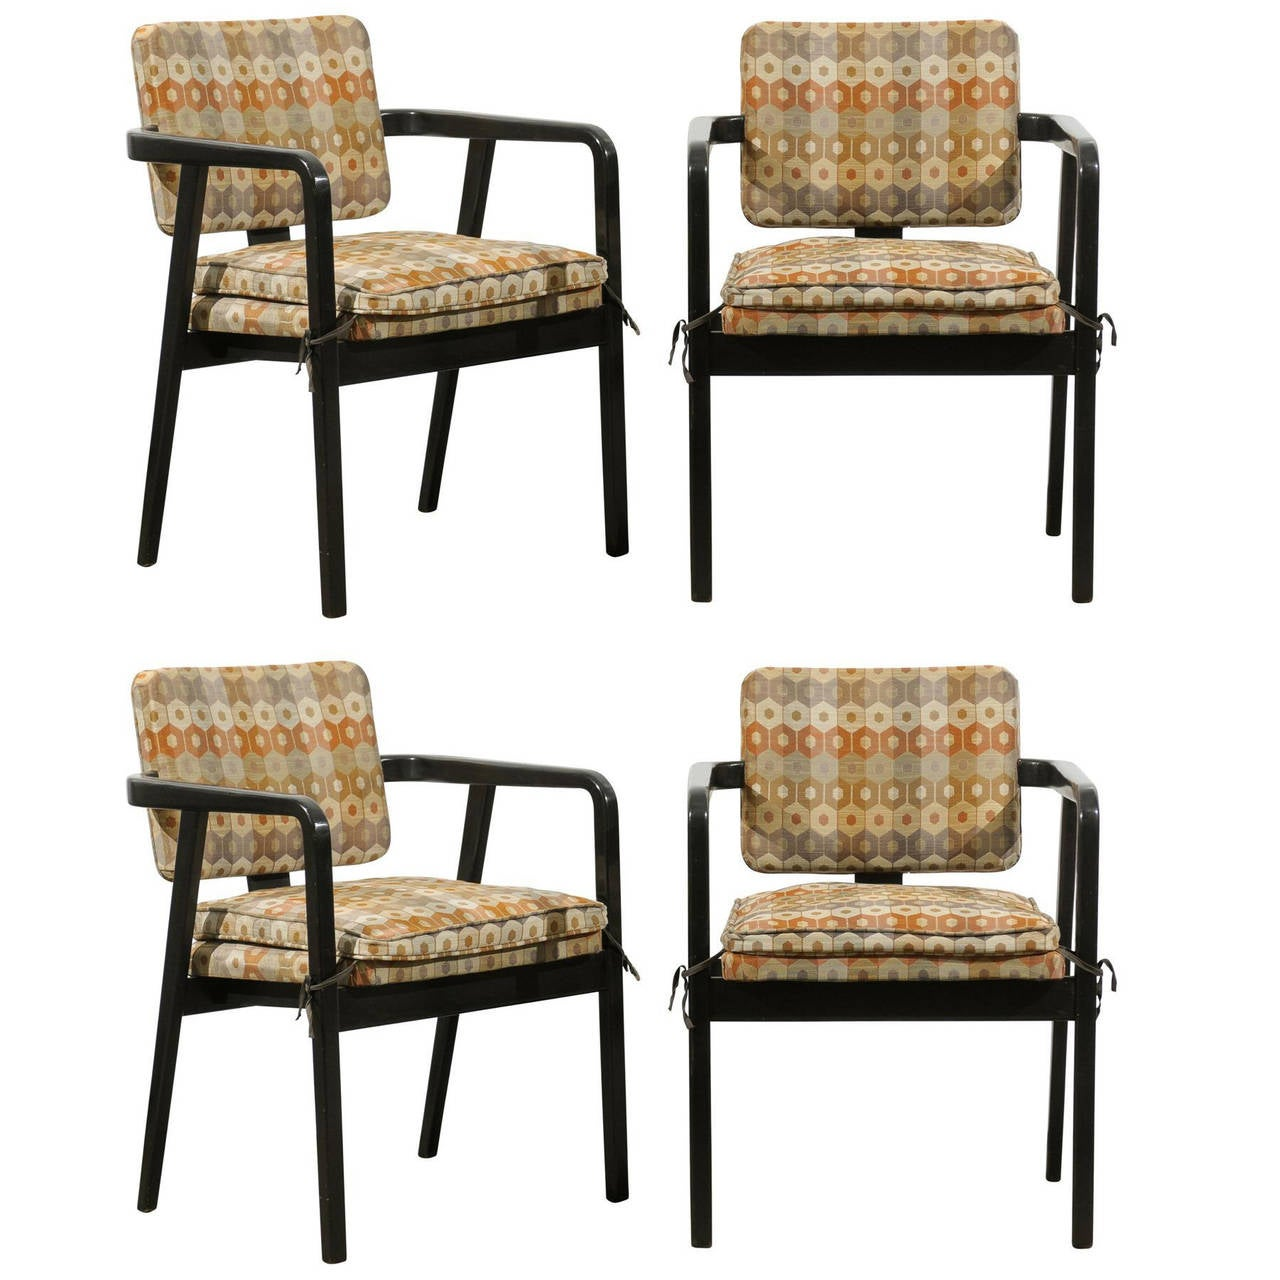 Set of Four Black Painted Chairs Designed by George Nelson